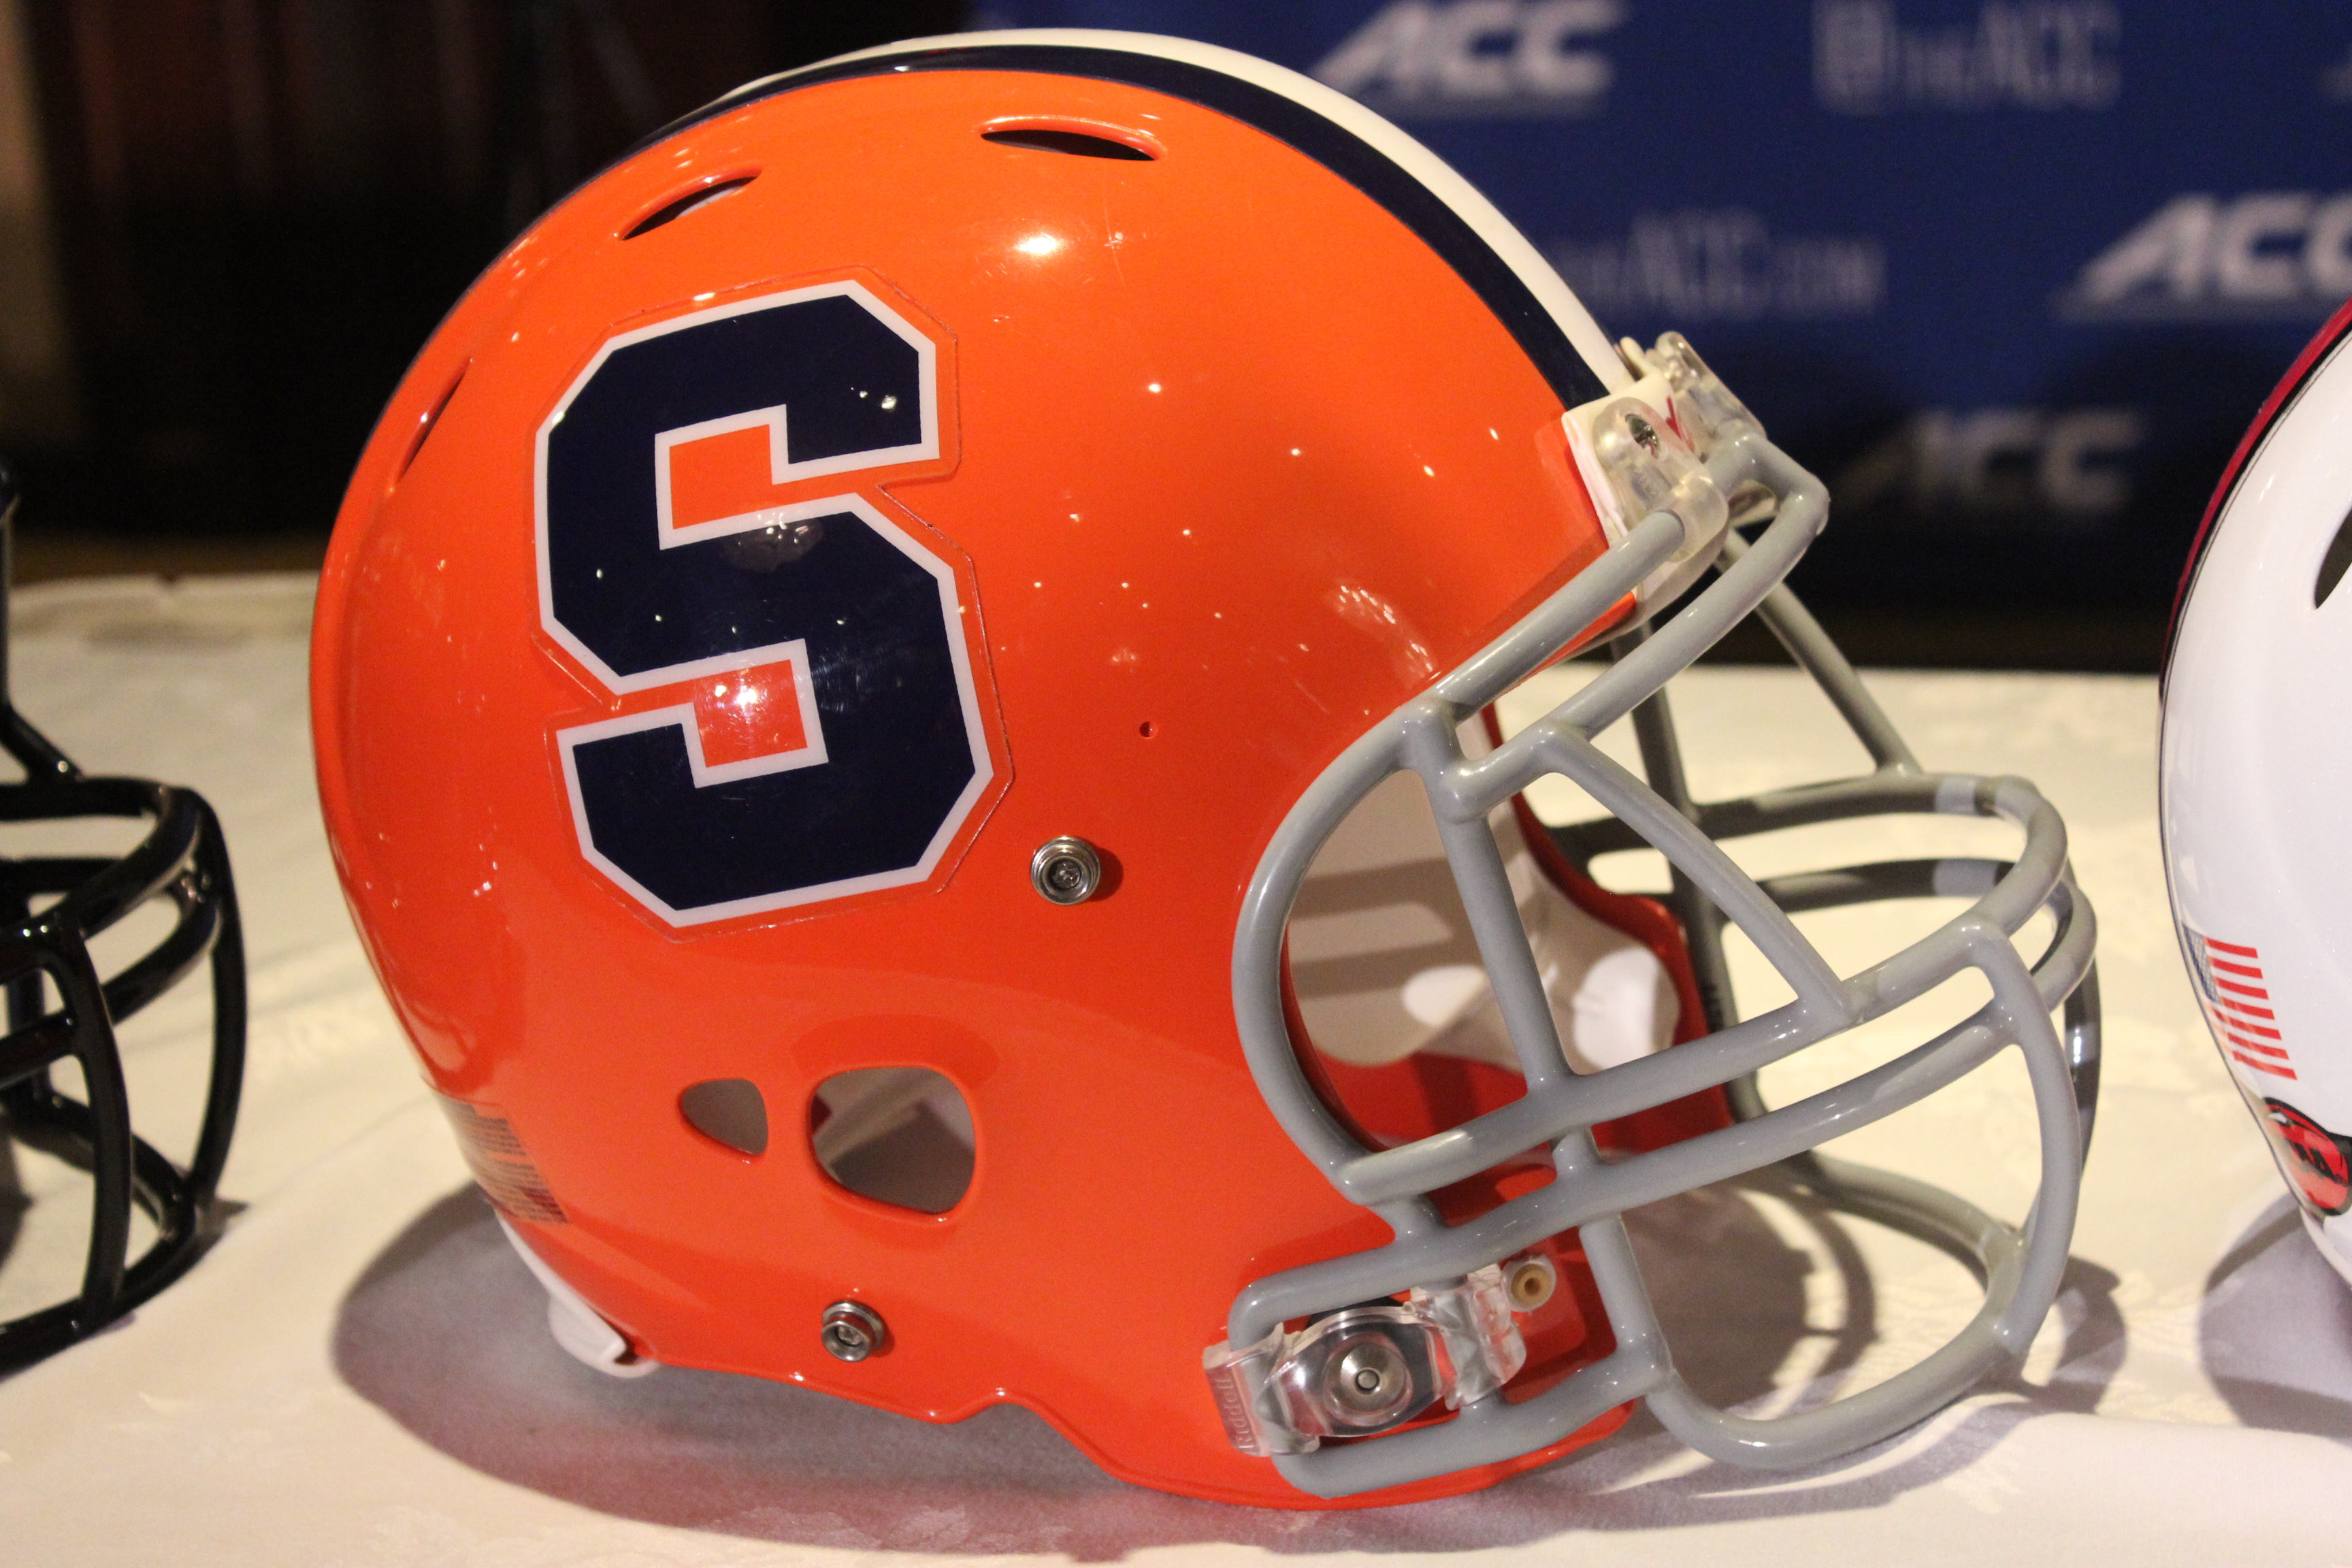 Syracuse Helmet 2014 ACC Kickoff Photo by Mark Blankenbaker